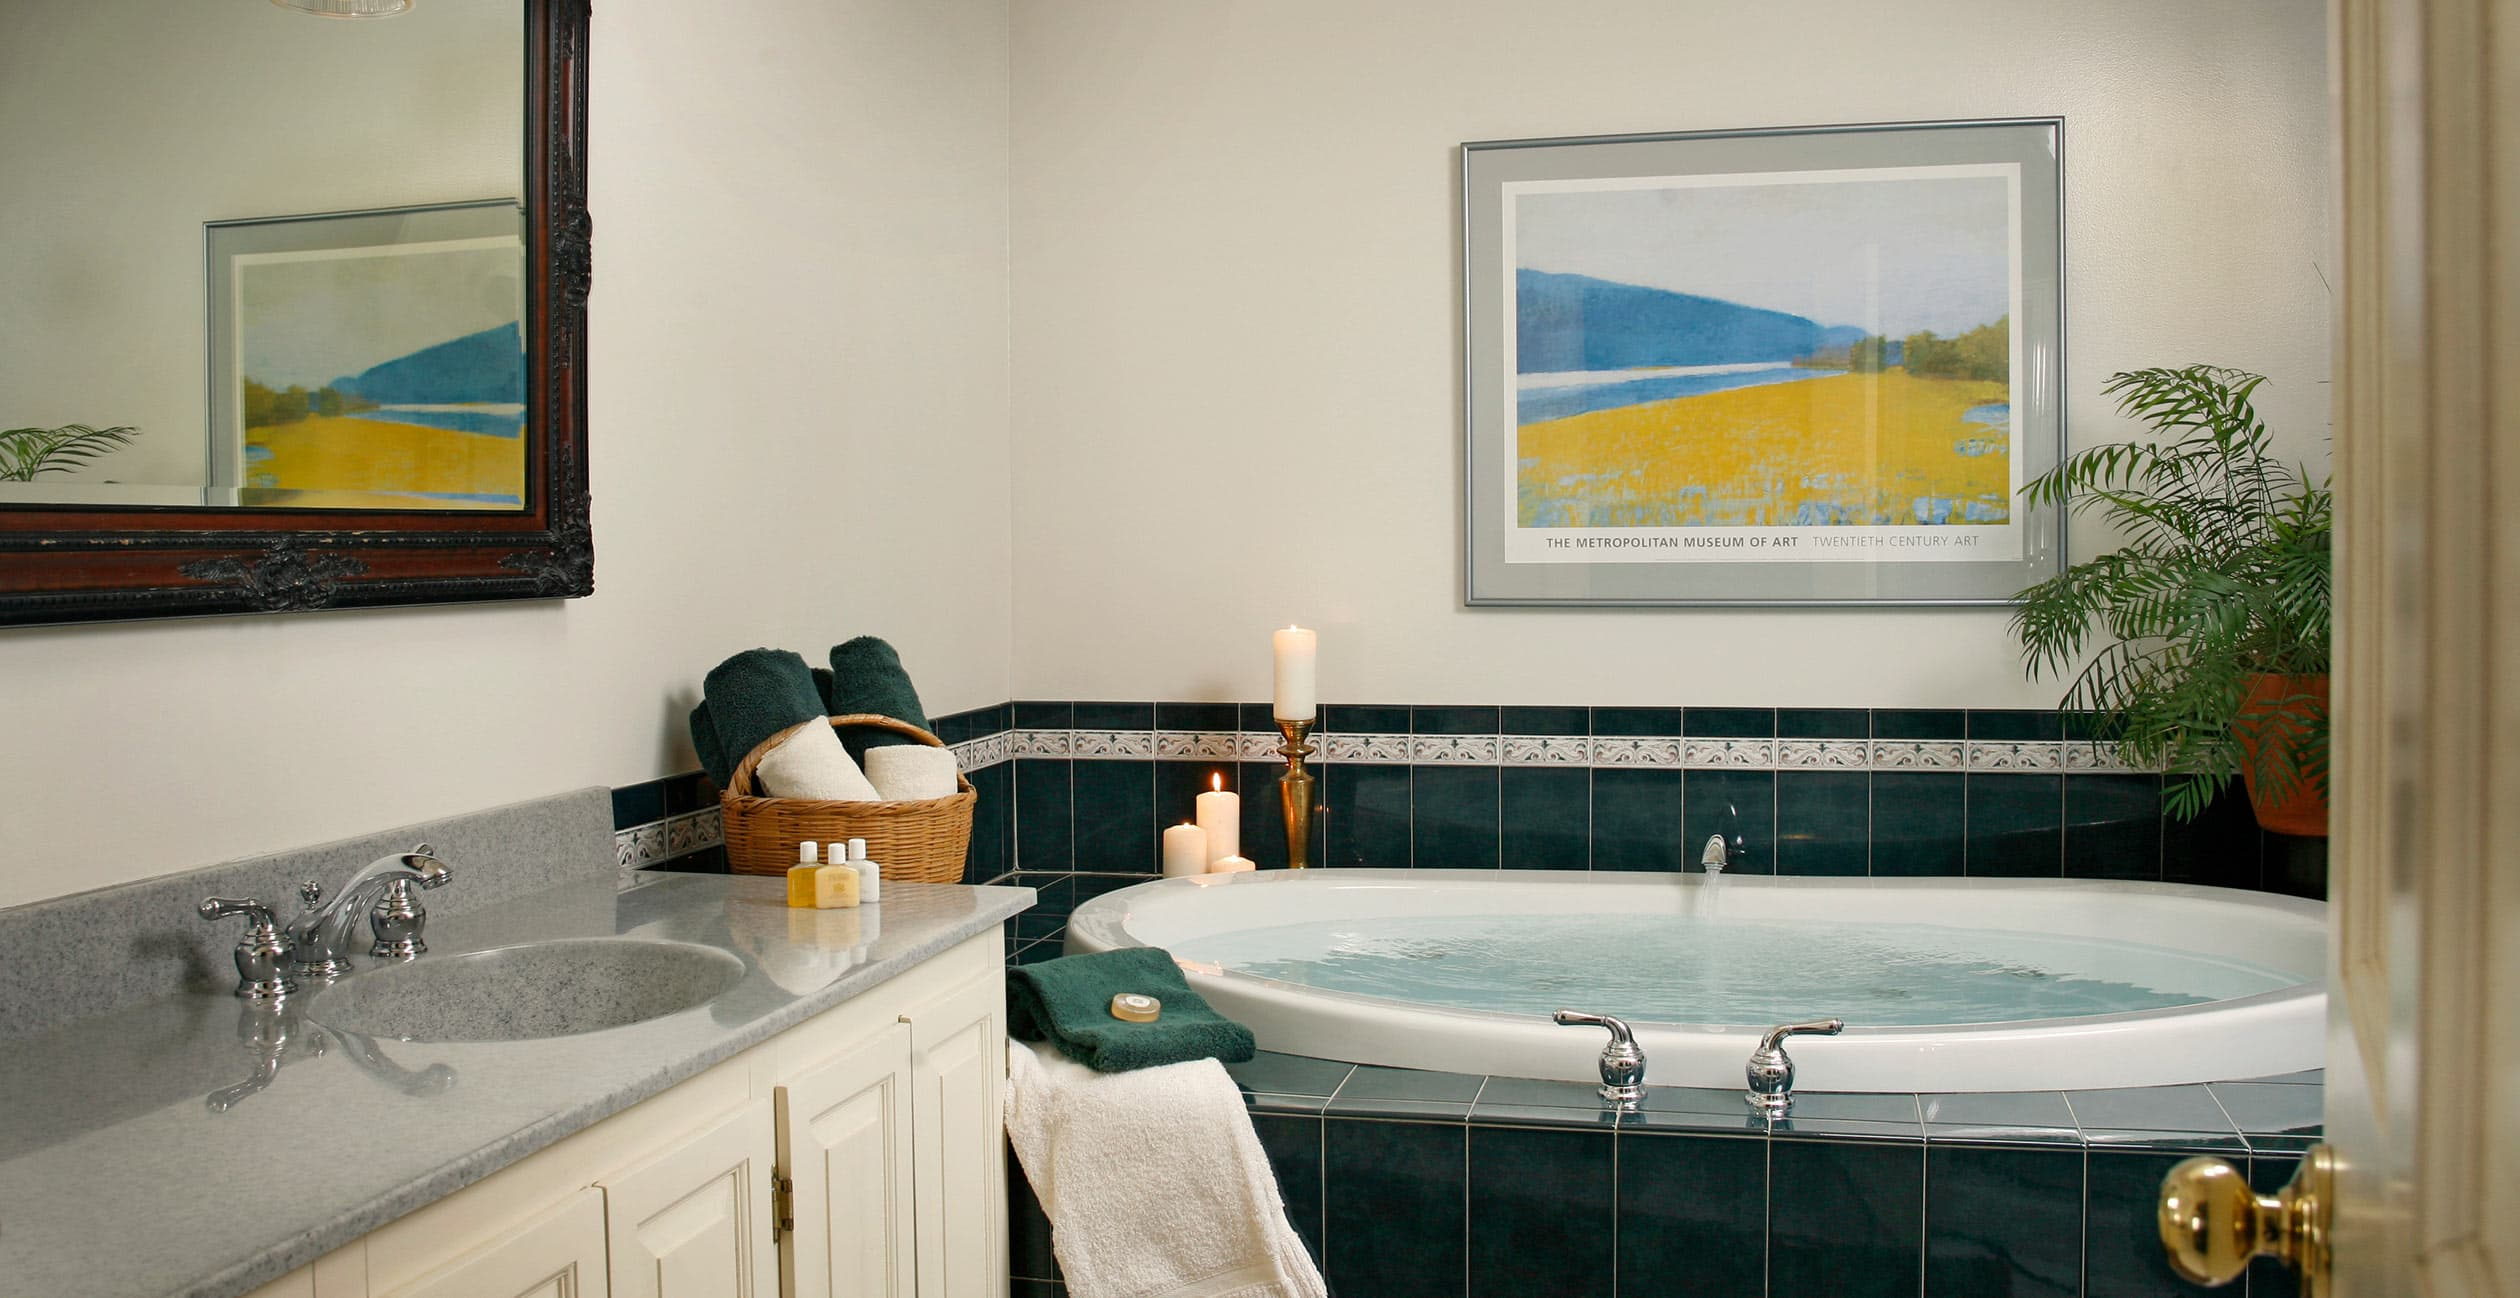 Room 19 Jetted Tub at our New Hampshire Luxury Inn